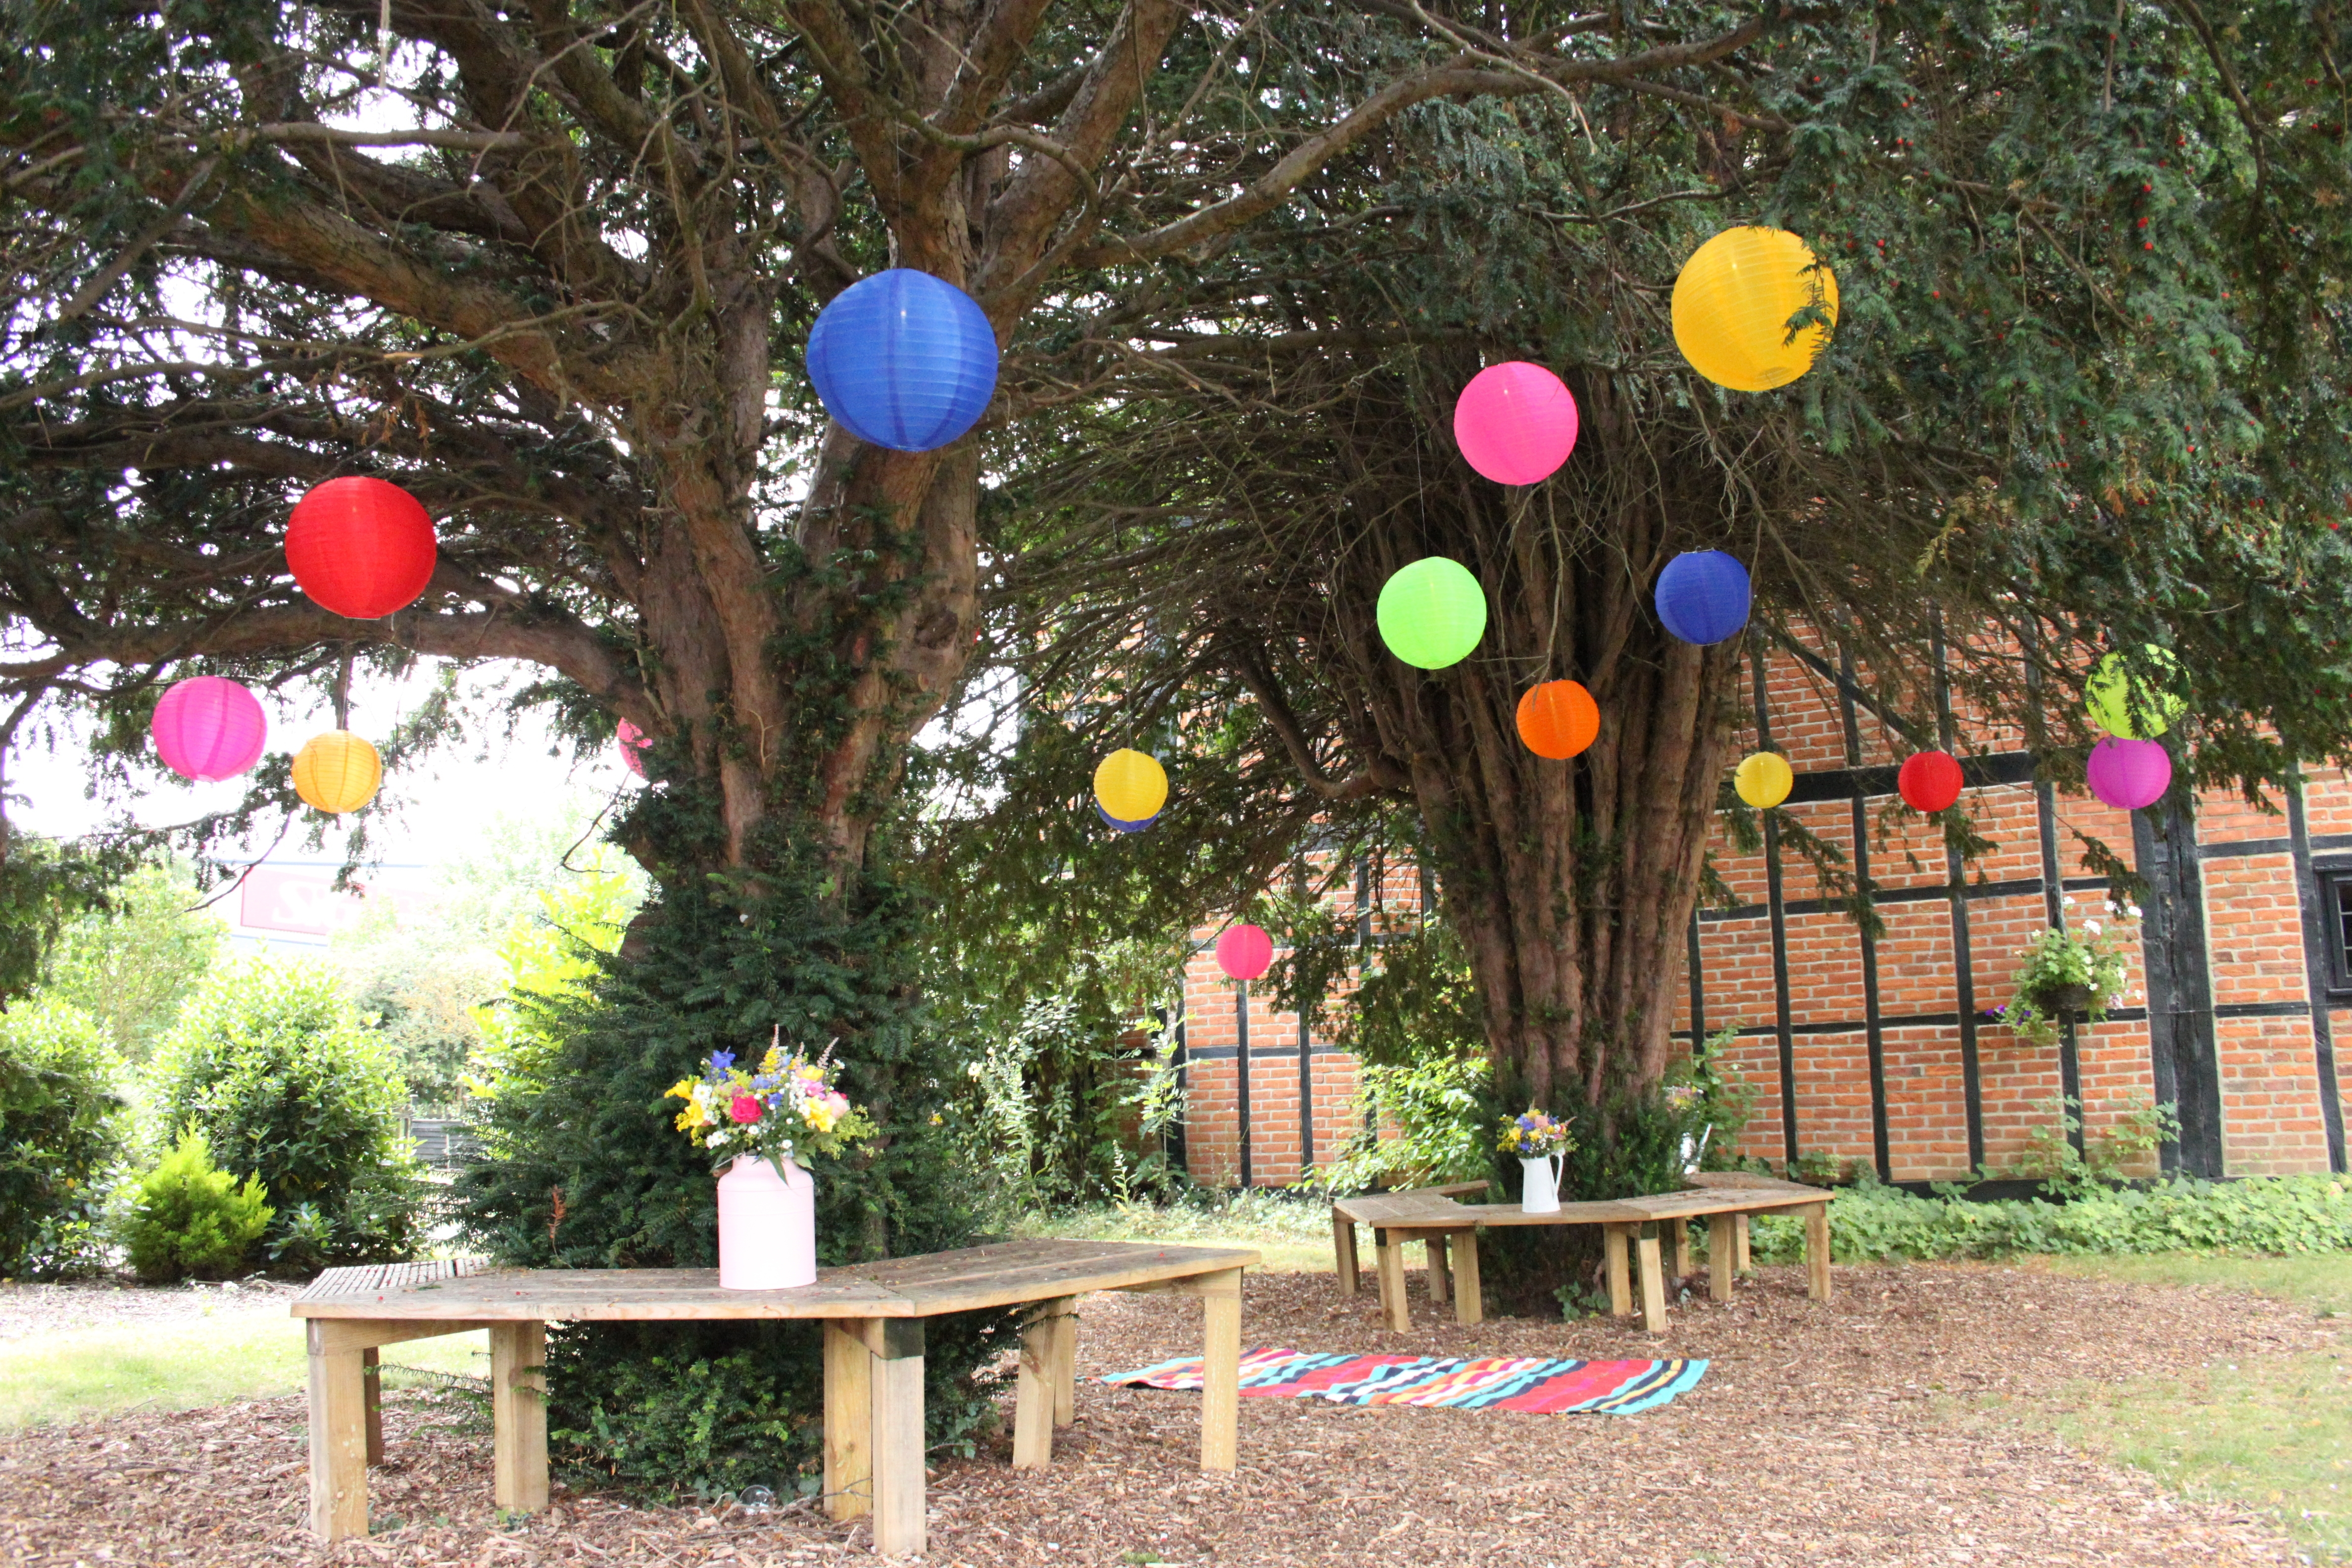 Mad Hatters Outdoor Coloured Nylon Lanterns Hanging Randomly In The Throughout Outdoor Hanging Lanterns For Trees (View 14 of 15)